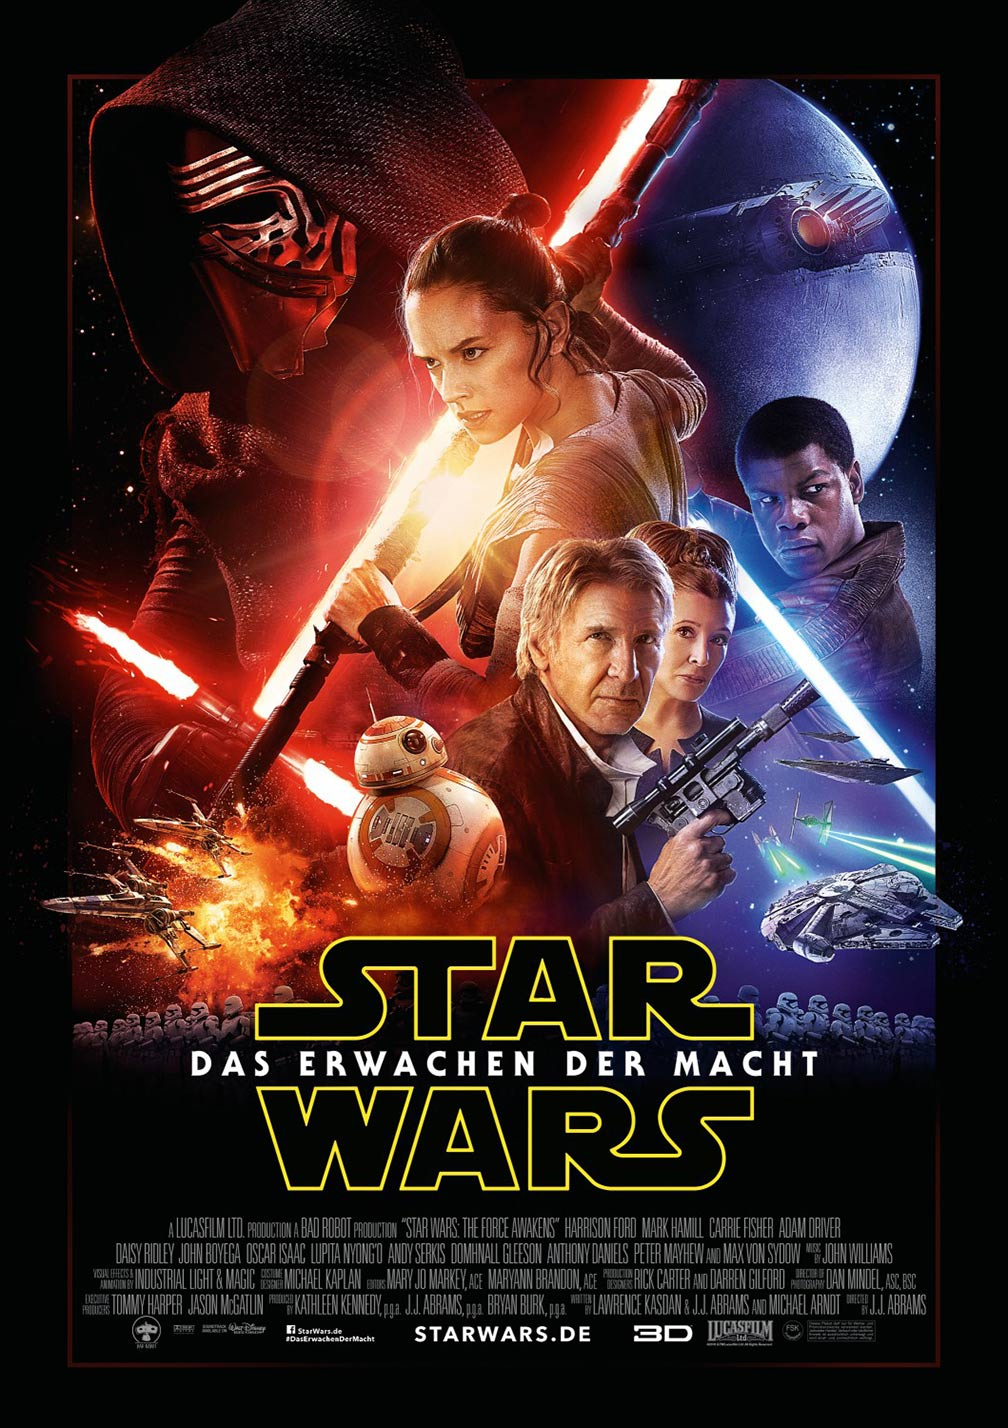 Star Wars: Episode VII - The Force Awakens Poster #5